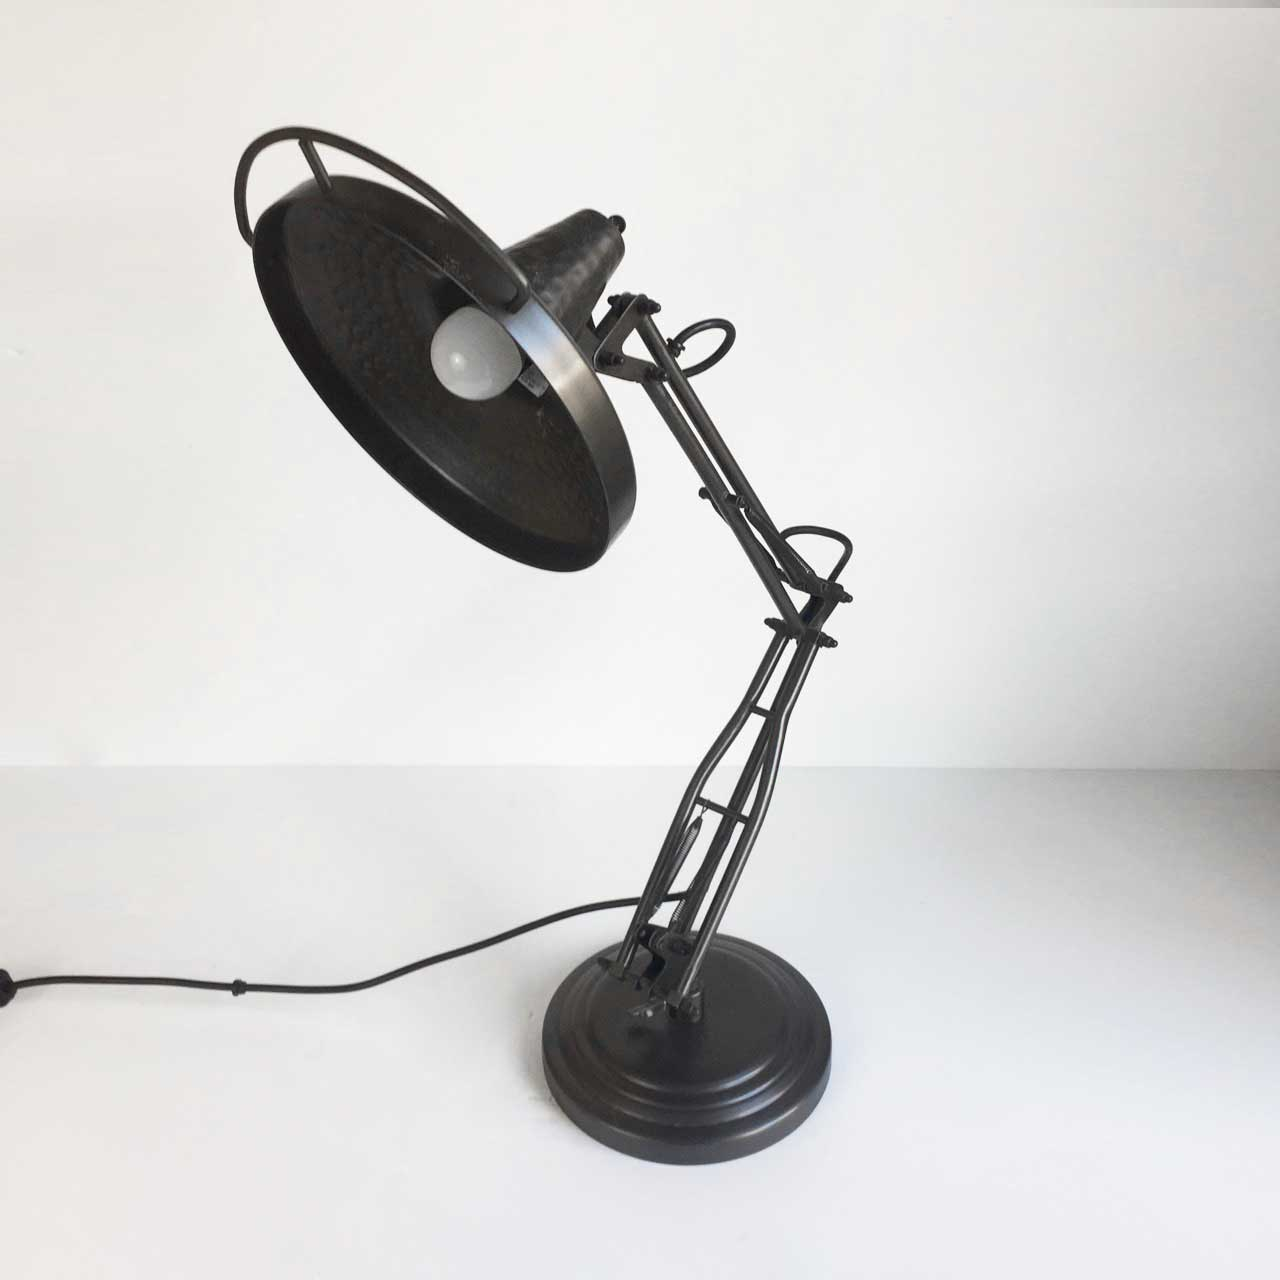 CLIVE ANGLEPOISE LAMP